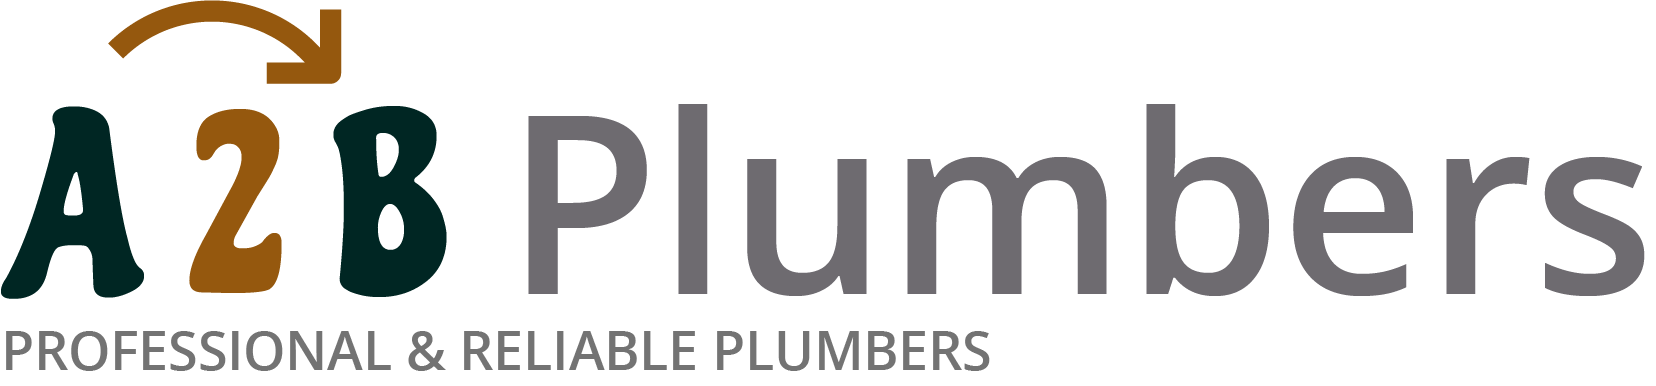 If you need a boiler installed, a radiator repaired or a leaking tap fixed, call us now - we provide services for properties in Paignton and the local area.